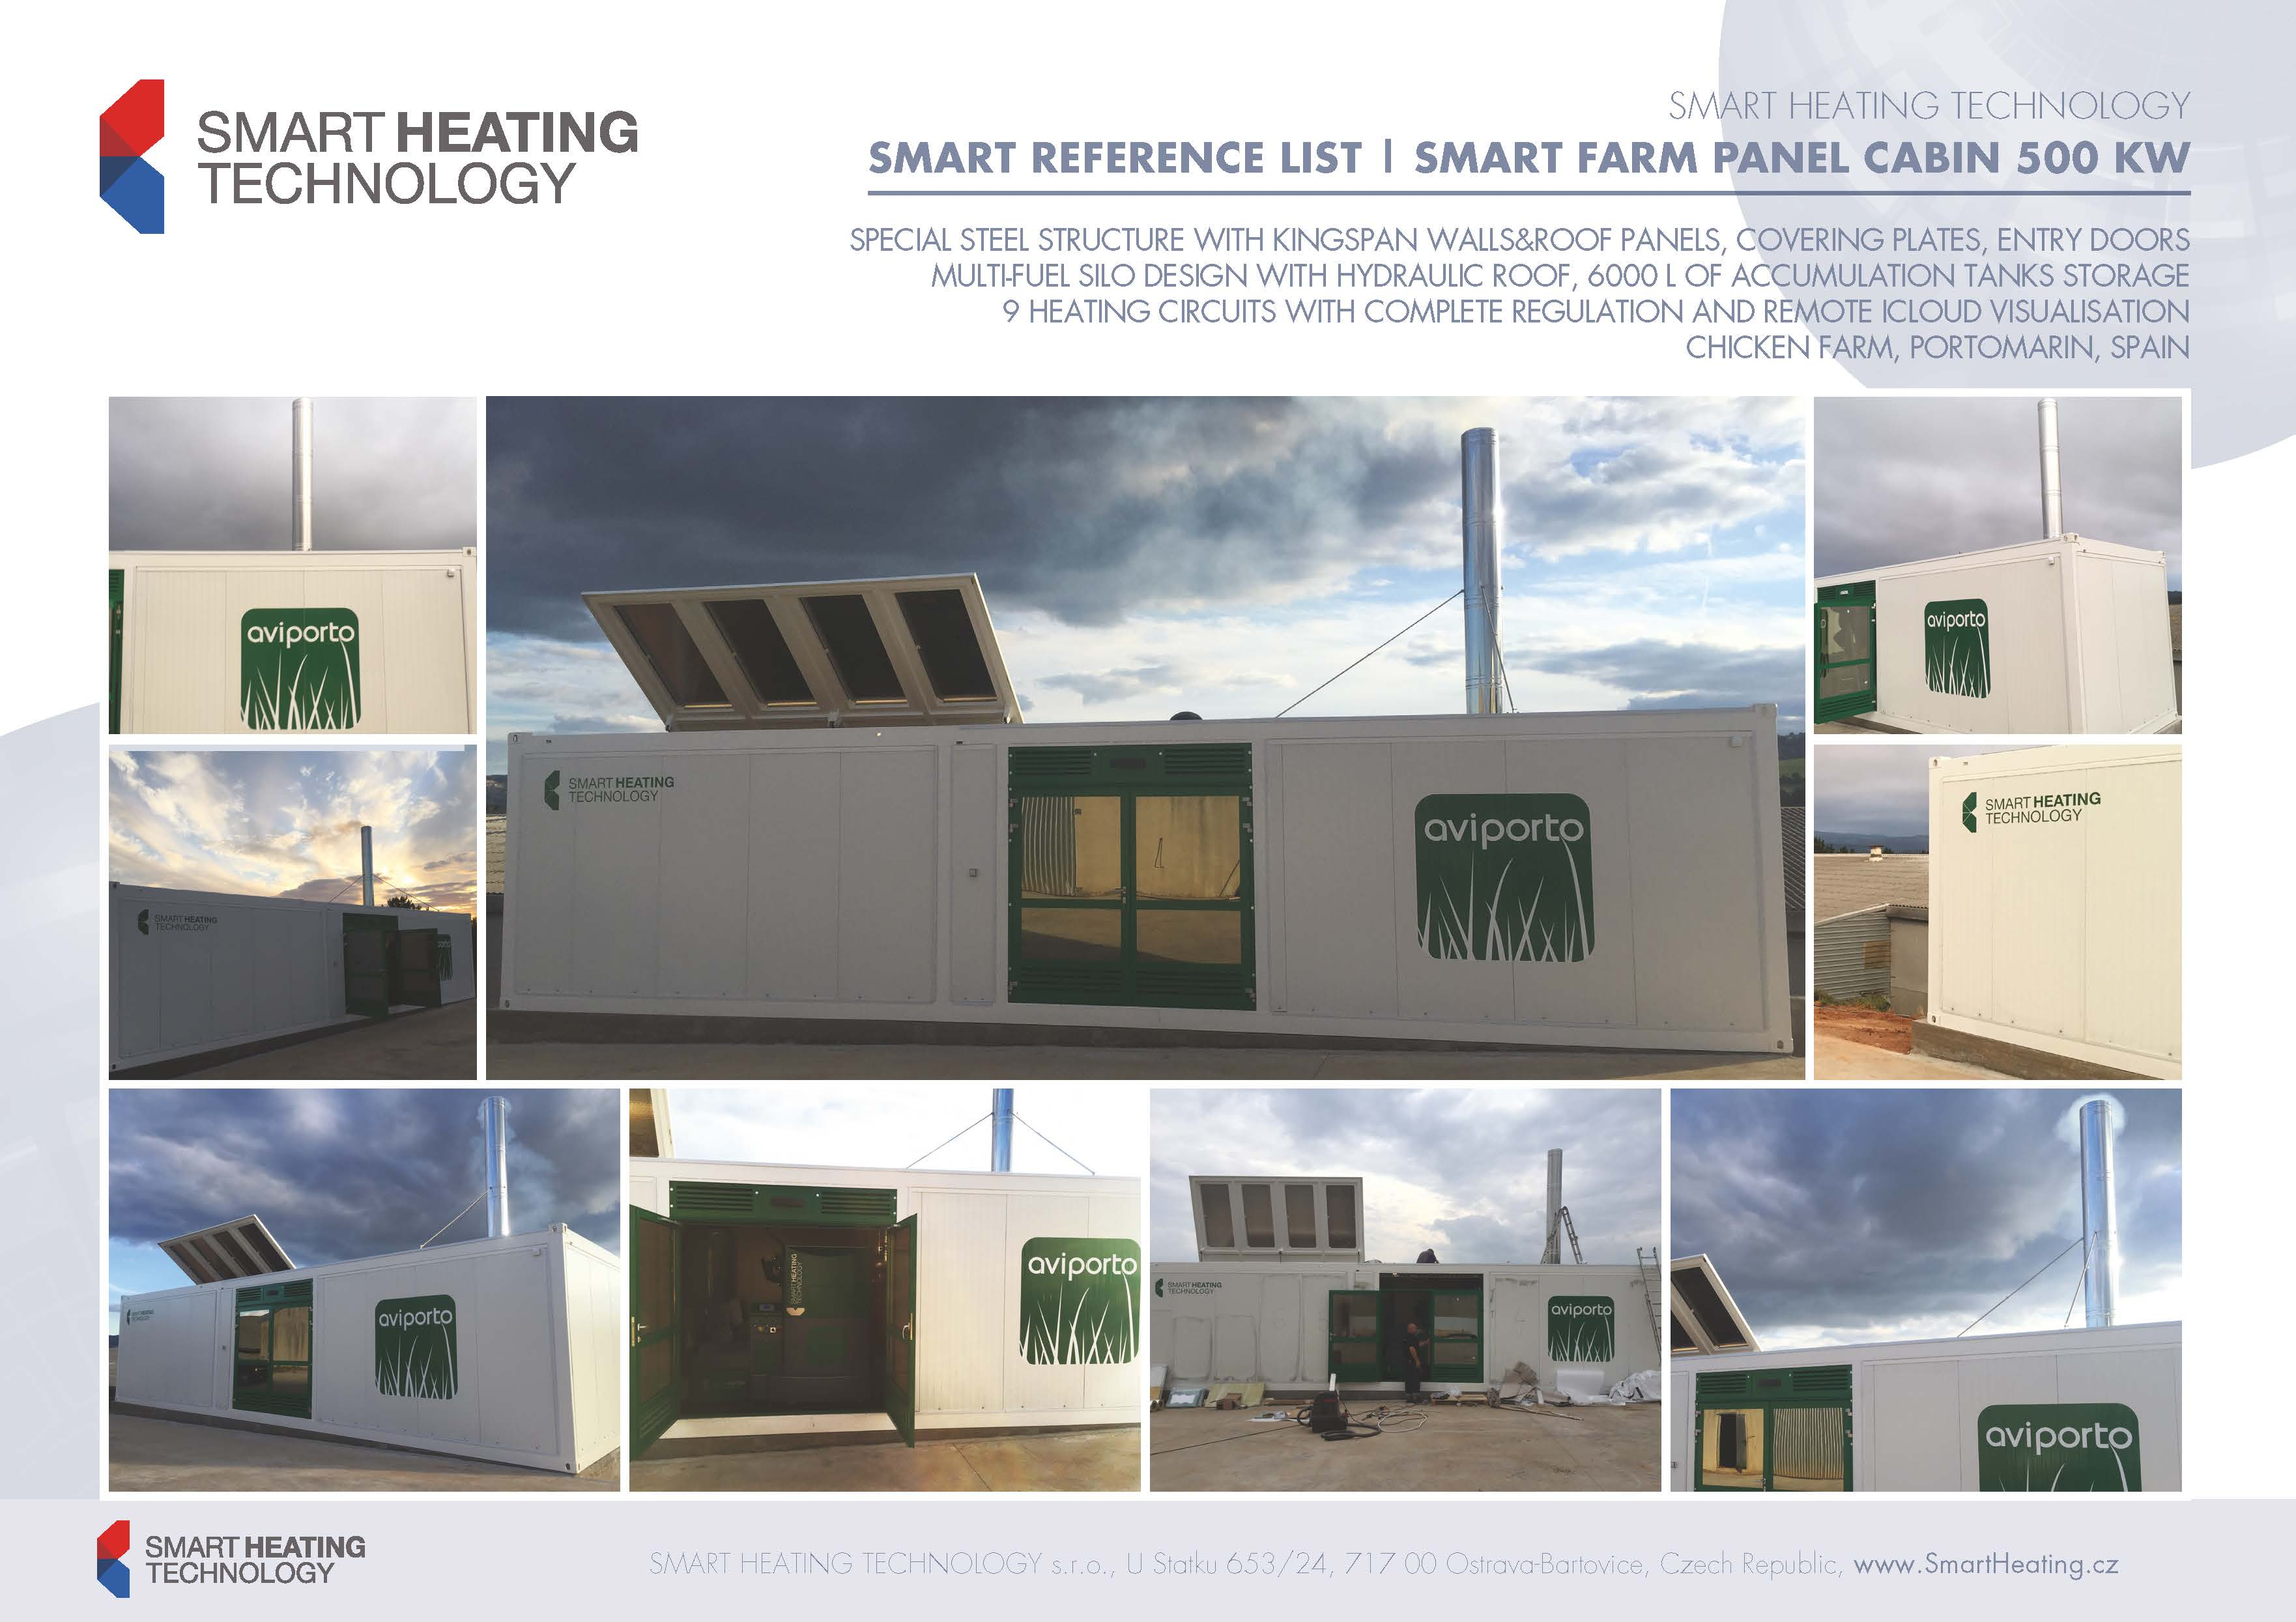 smart-aviporto-farm-cabin-500-kw